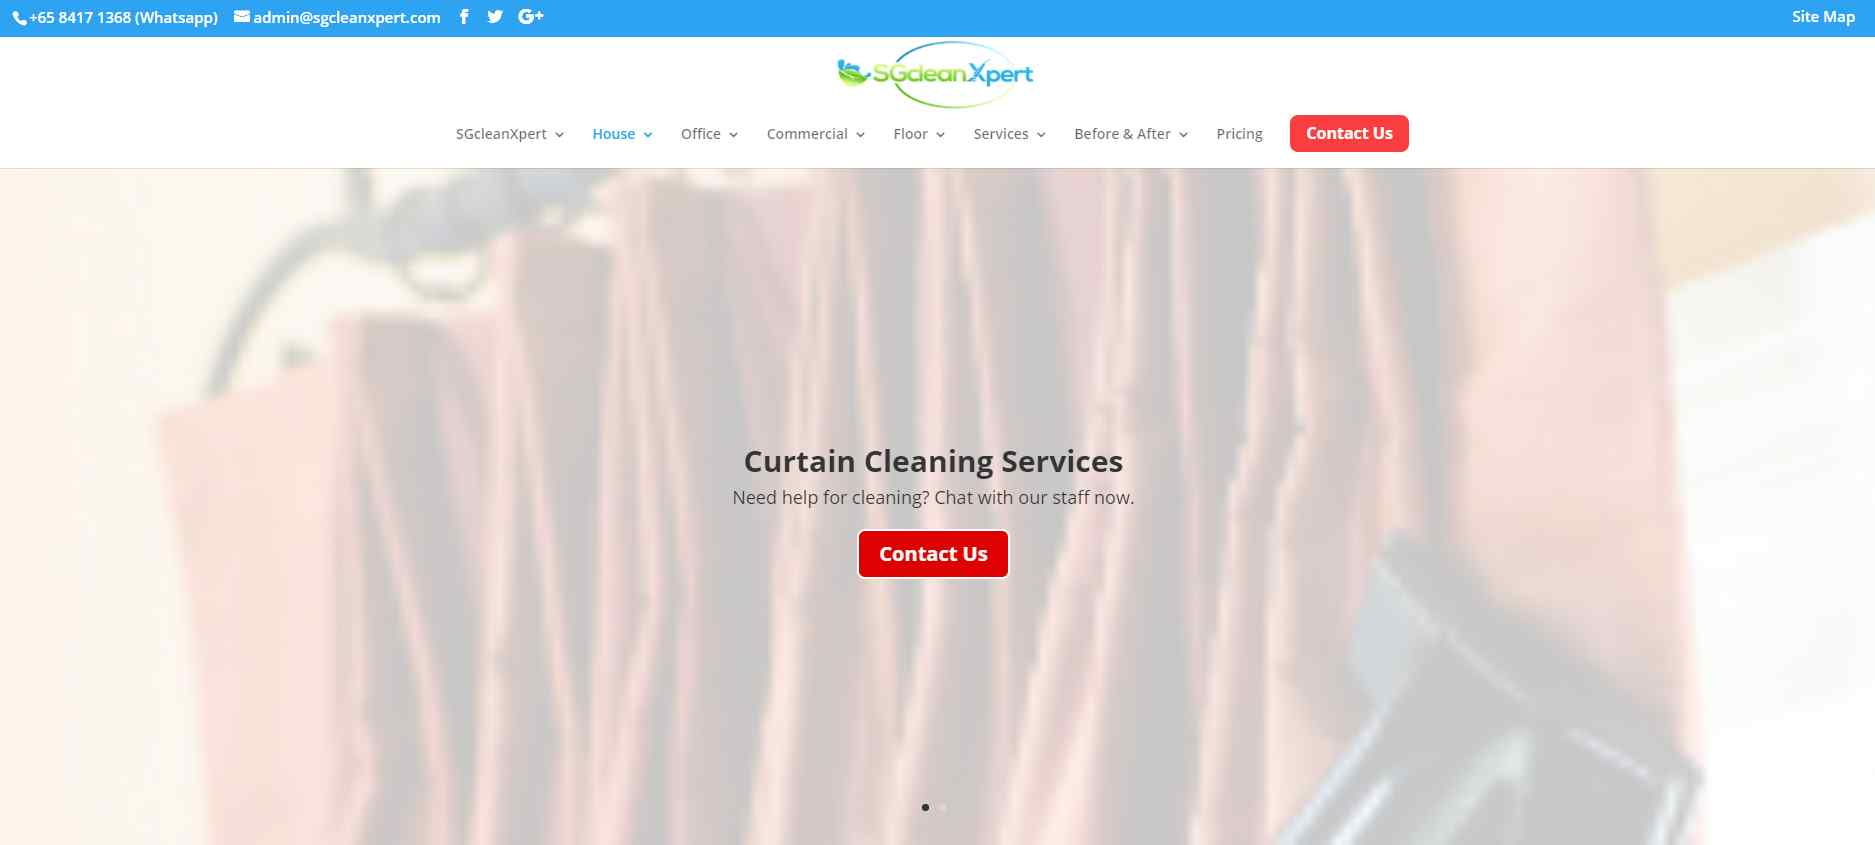 sg clean expert Top Curtain Cleaning Services in Singapore